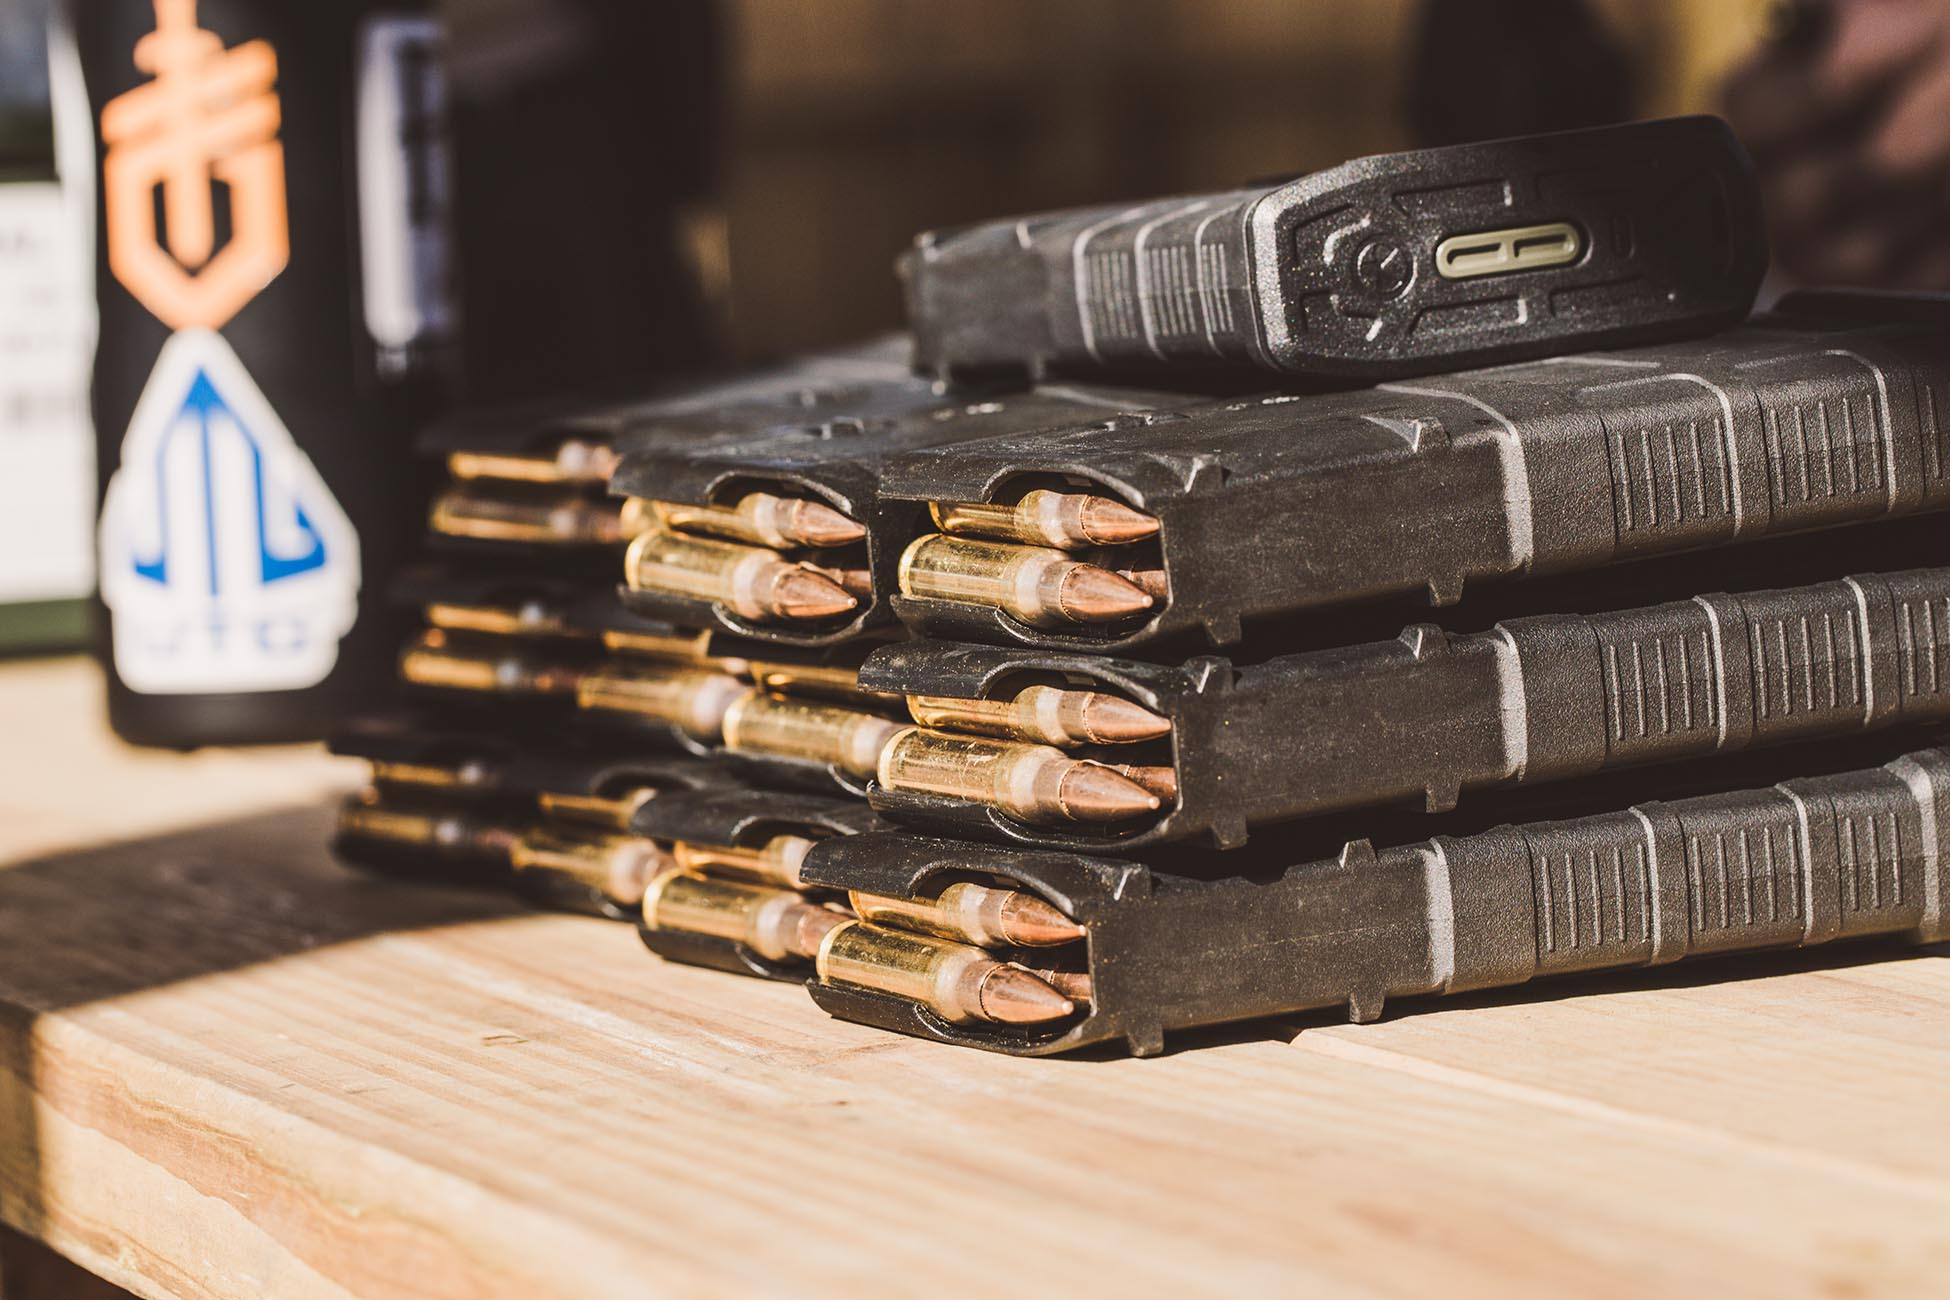 IMG Tag: Magpul PMAG 30 Round Magazines in black and fully loaded